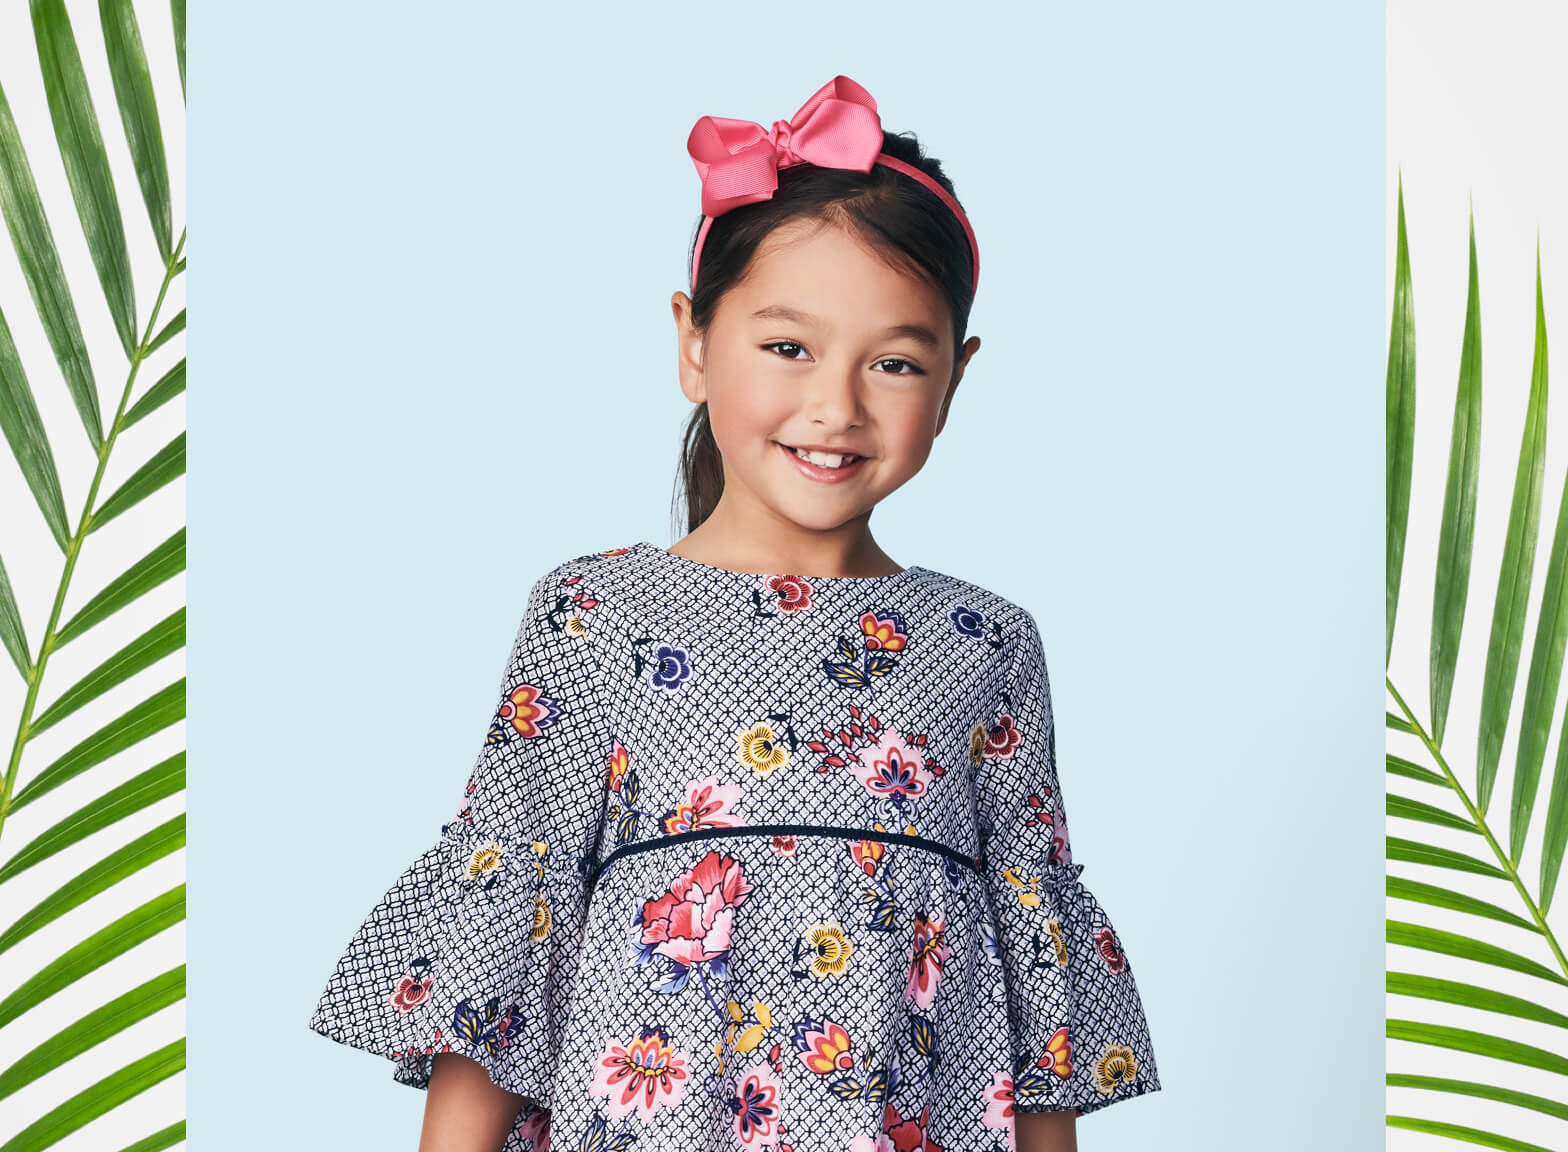 Young girl wearing floral dress and bow